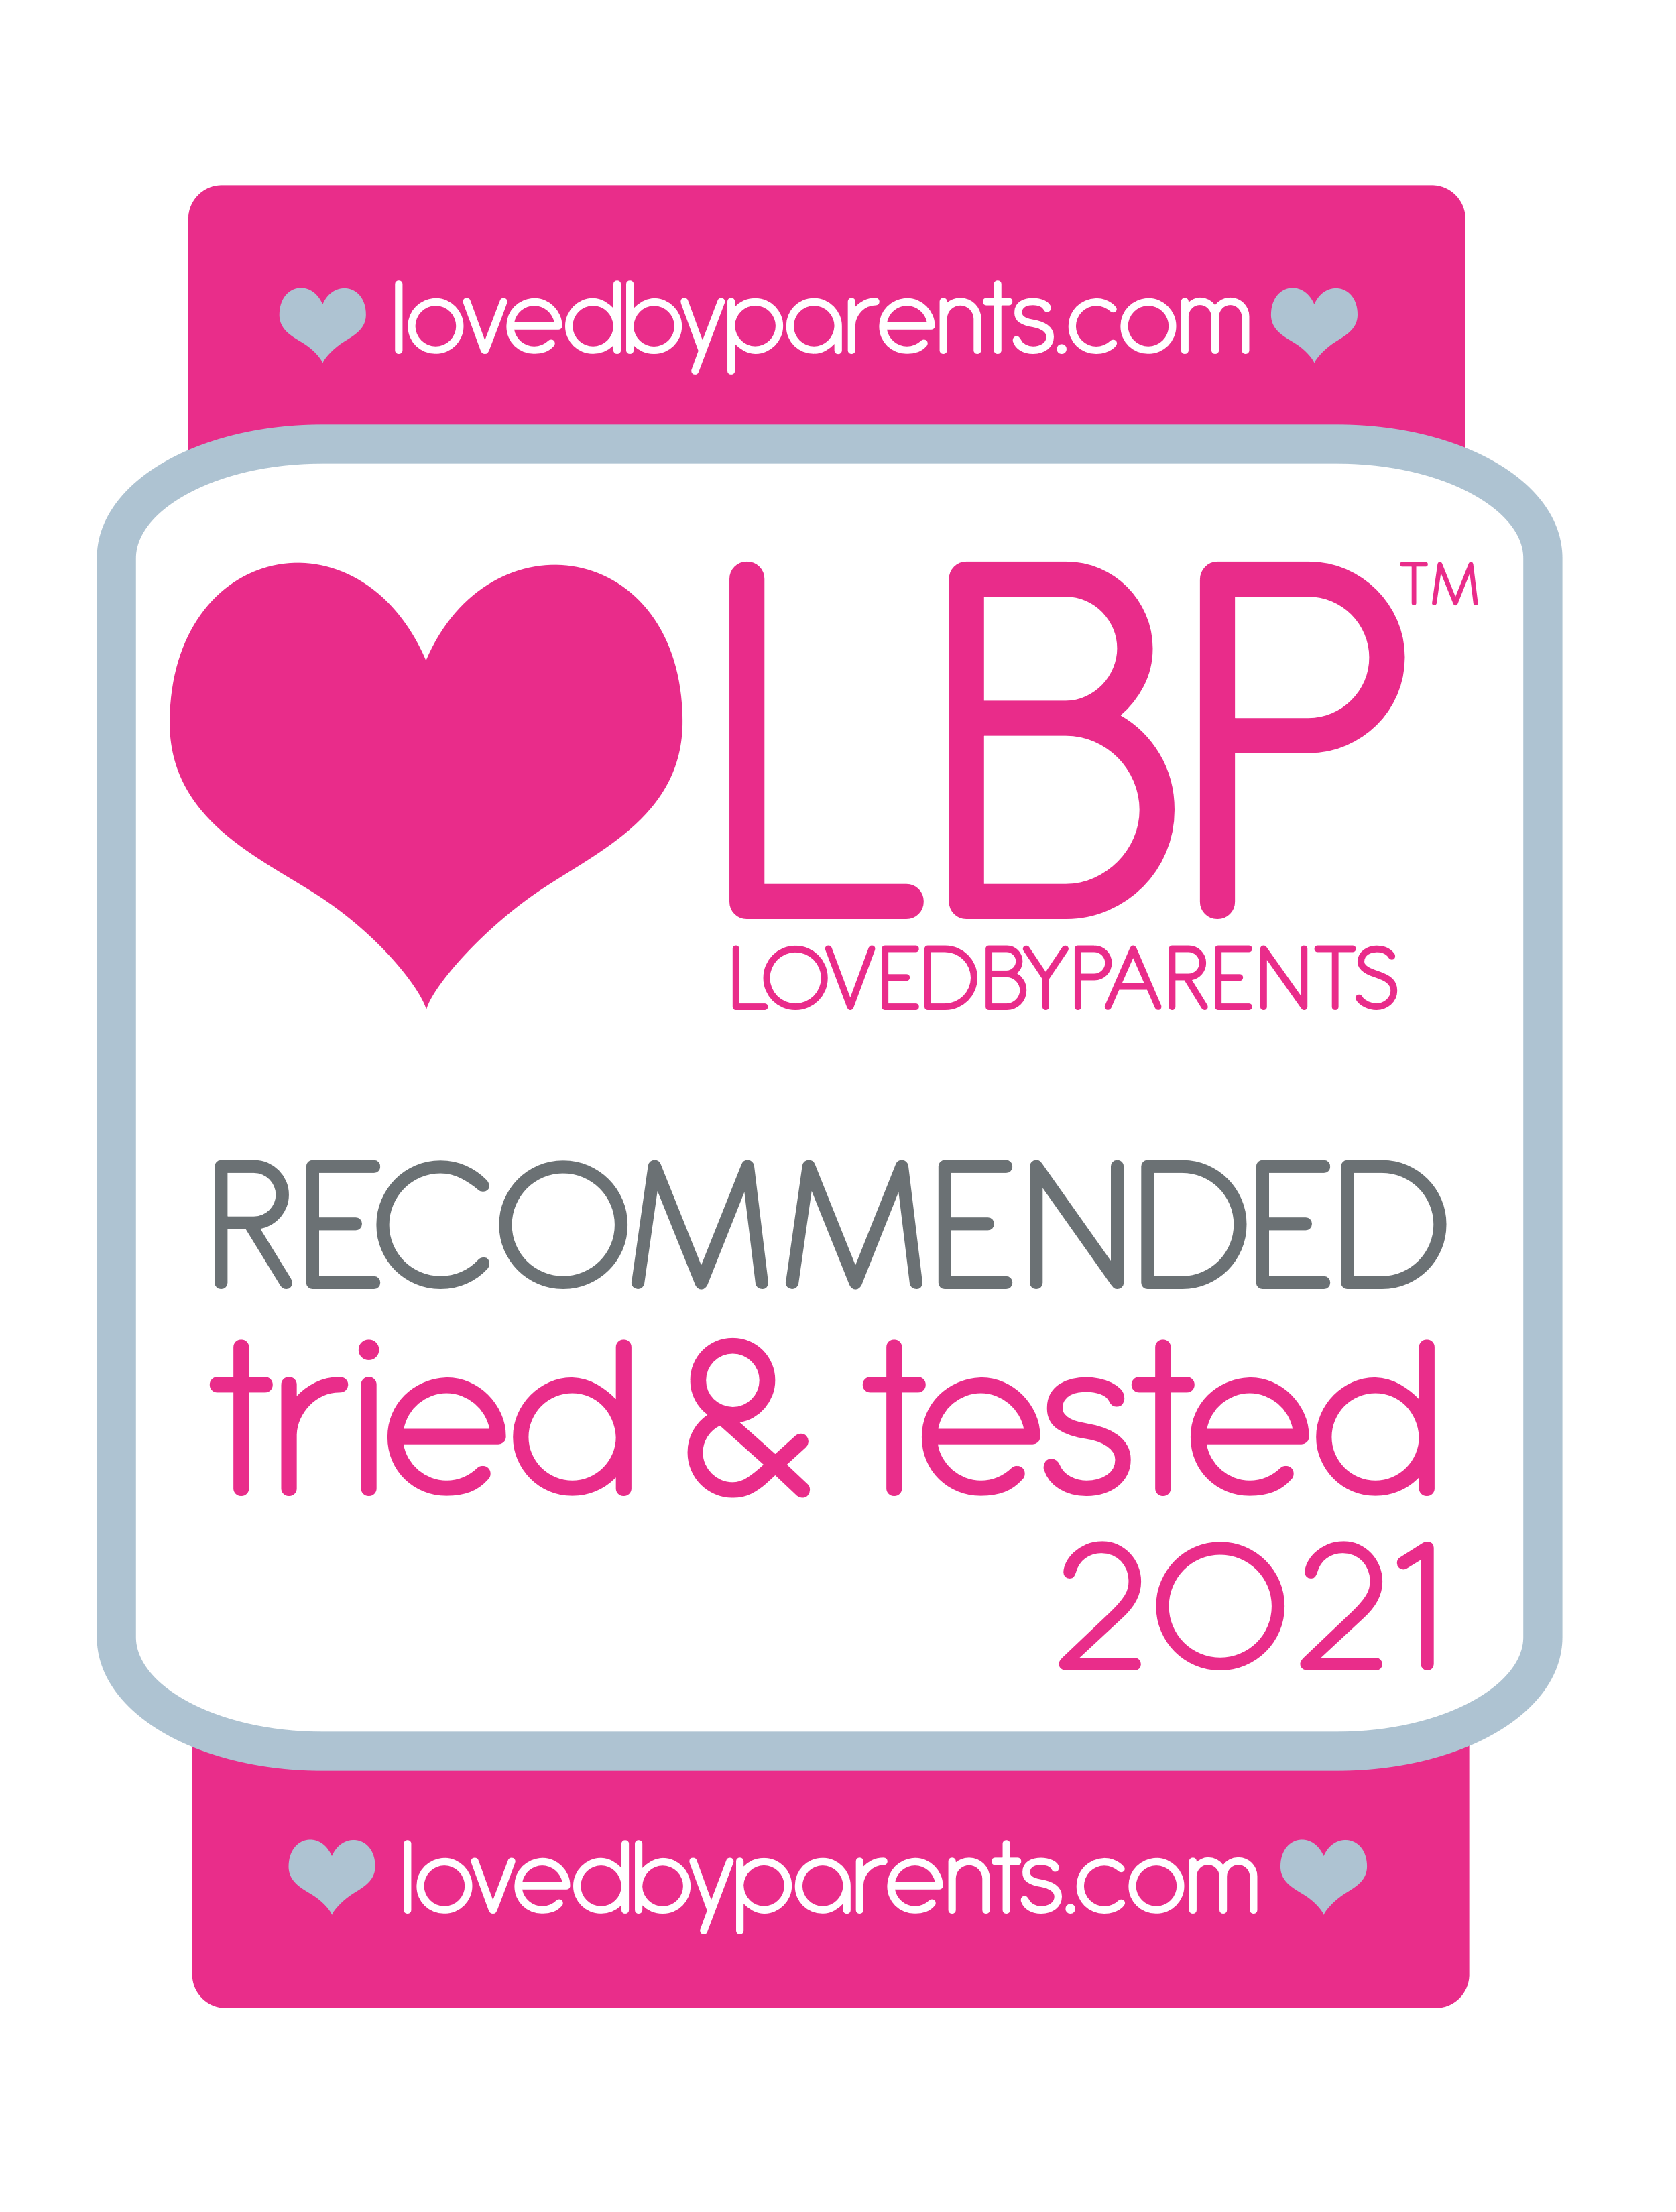 Tried & tested 2021 – LBP